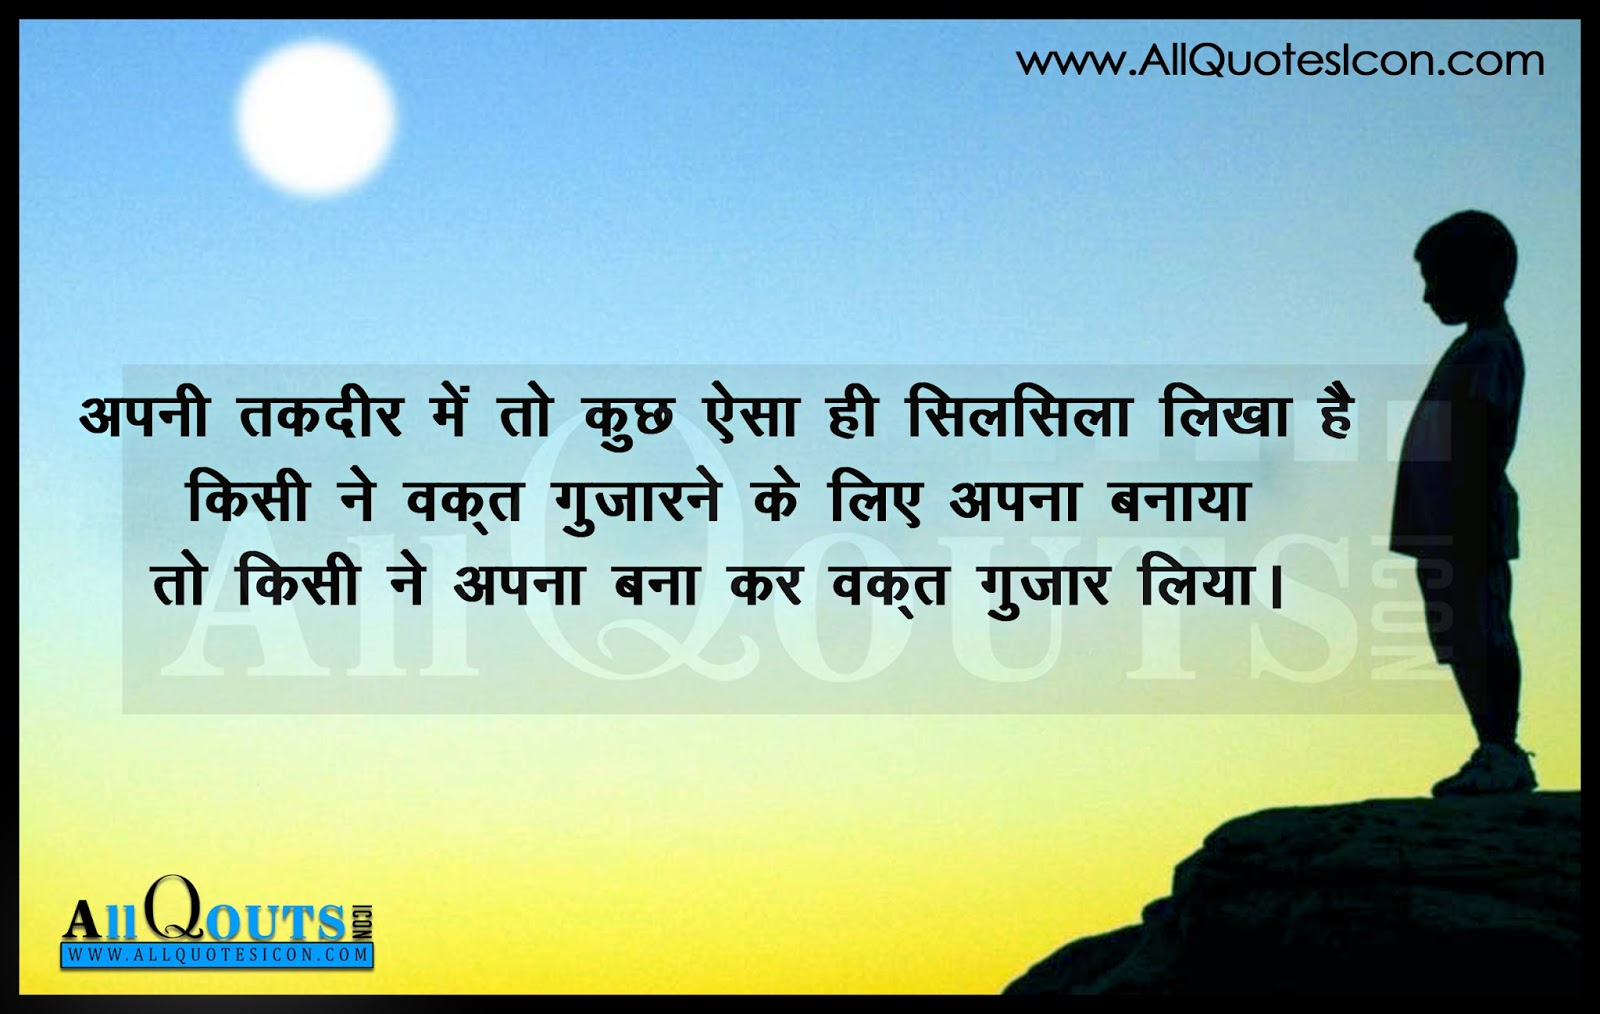 Life Shayari and Thoughts in Hindi | www.AllQuotesIcon.com | Telugu Quotes | Tamil Quotes ...